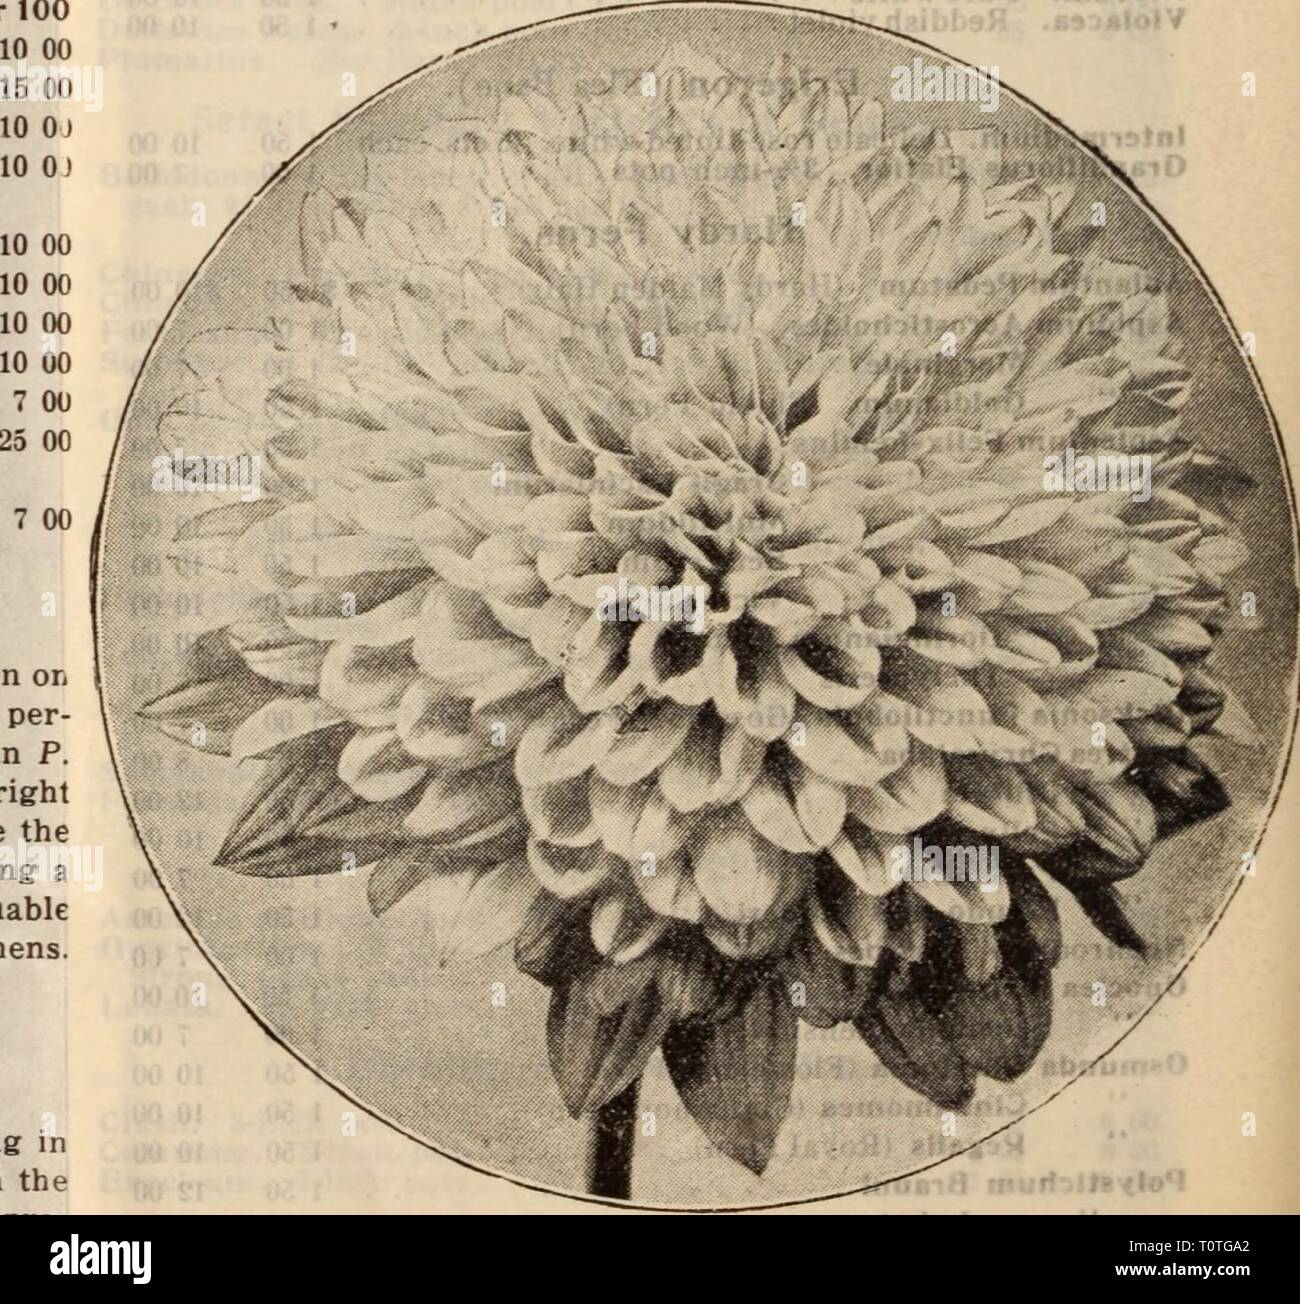 Dreer's wholesale price list  Dreer's wholesale price list / Henry A. Dreer.  dreerswholesalep1912dree Year:   HELIOPSIS SCABRA ZINNIAFLORA Gunnera. 10 OJ Scabra. Fine strong plants in 5-inch pots of this grand foliage plant. 35 cents each; $3.50 per dozen. ORNAMENTAL GRASSES AND BAMBOOS. These are now used very extensively for beds, specimens on lawns, etc., etc. We grow the leading varieties in large quantities. For full descriptions, see pages 192 and 193 of our Garden Book for 1914. Grasses. Per doz. Per 100 Arundo Donax. Strong, dormant eyes $1 50 $10 00 Donax Varie8:ata. Strong, dormant  Stock Photo